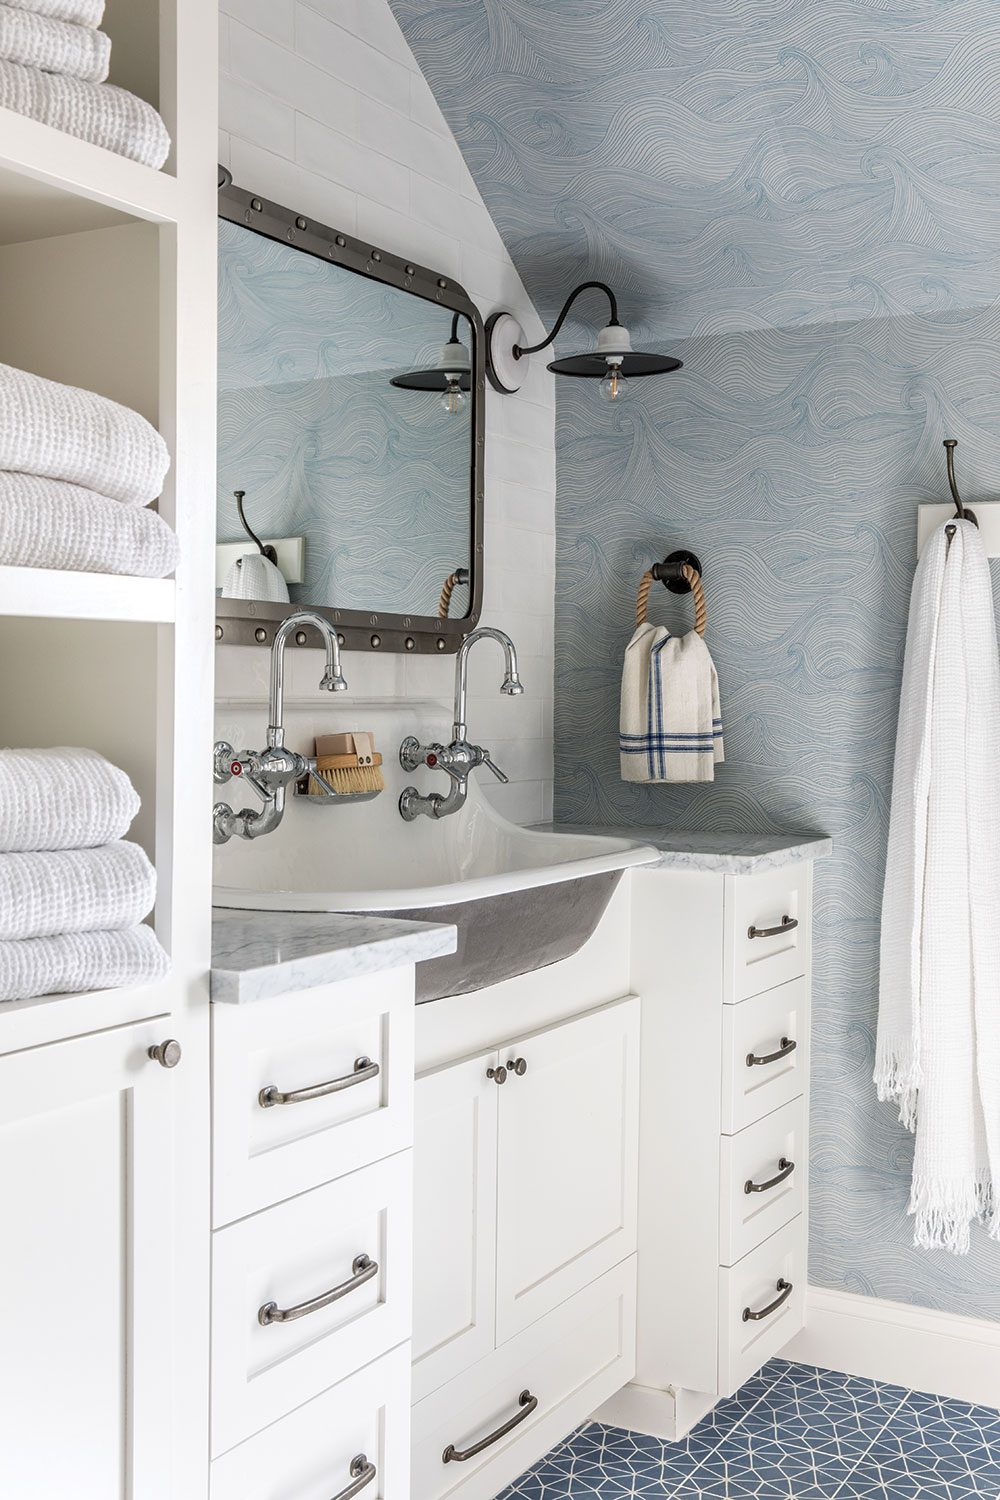 The kids' bath combines a Kohler cast-iron trough sink with Abigail Edwards's Seascape wallpaper and geometric floor tile.